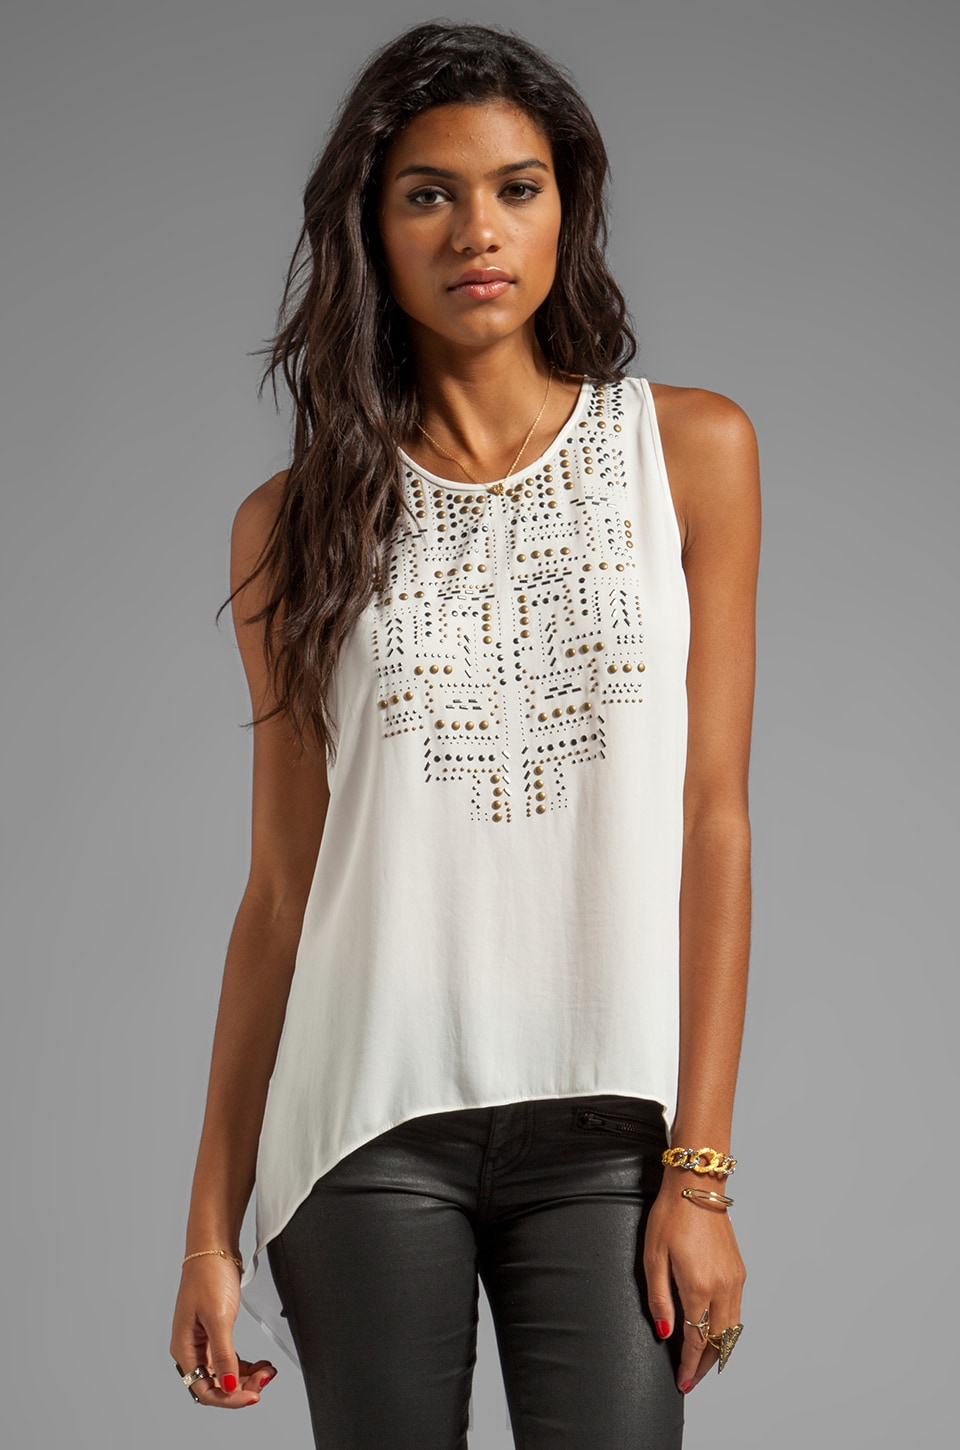 BCBGMAXAZRIA Sleeveless Top in Gardenia